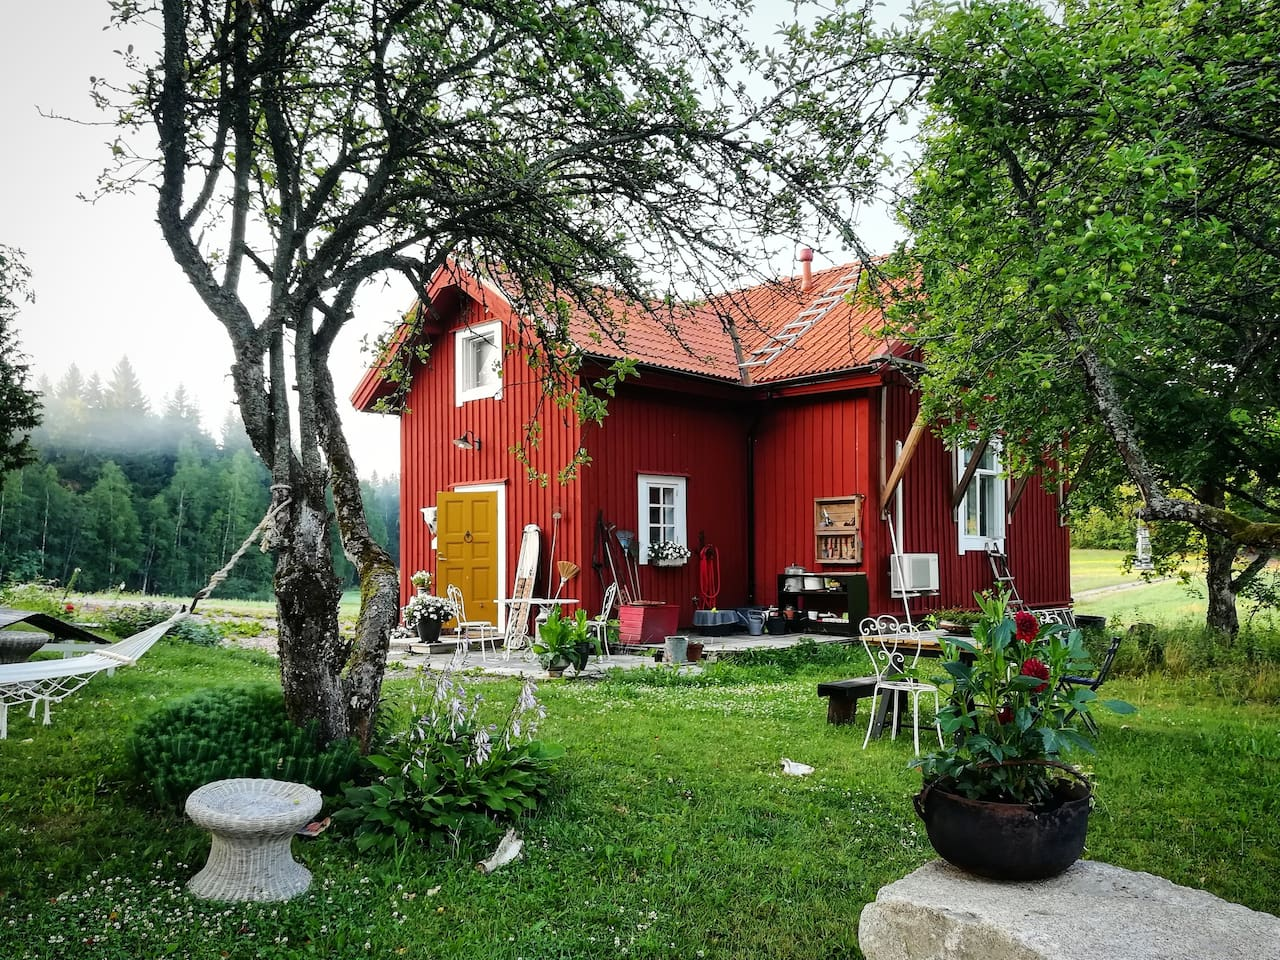 This is my home. It was built 1900 and totally renovated 5 years ago. The red color is typical in the Finnish countryside. In the garden there is a pergola and a table under the old apple trees, two hammocks and some rest chairs.